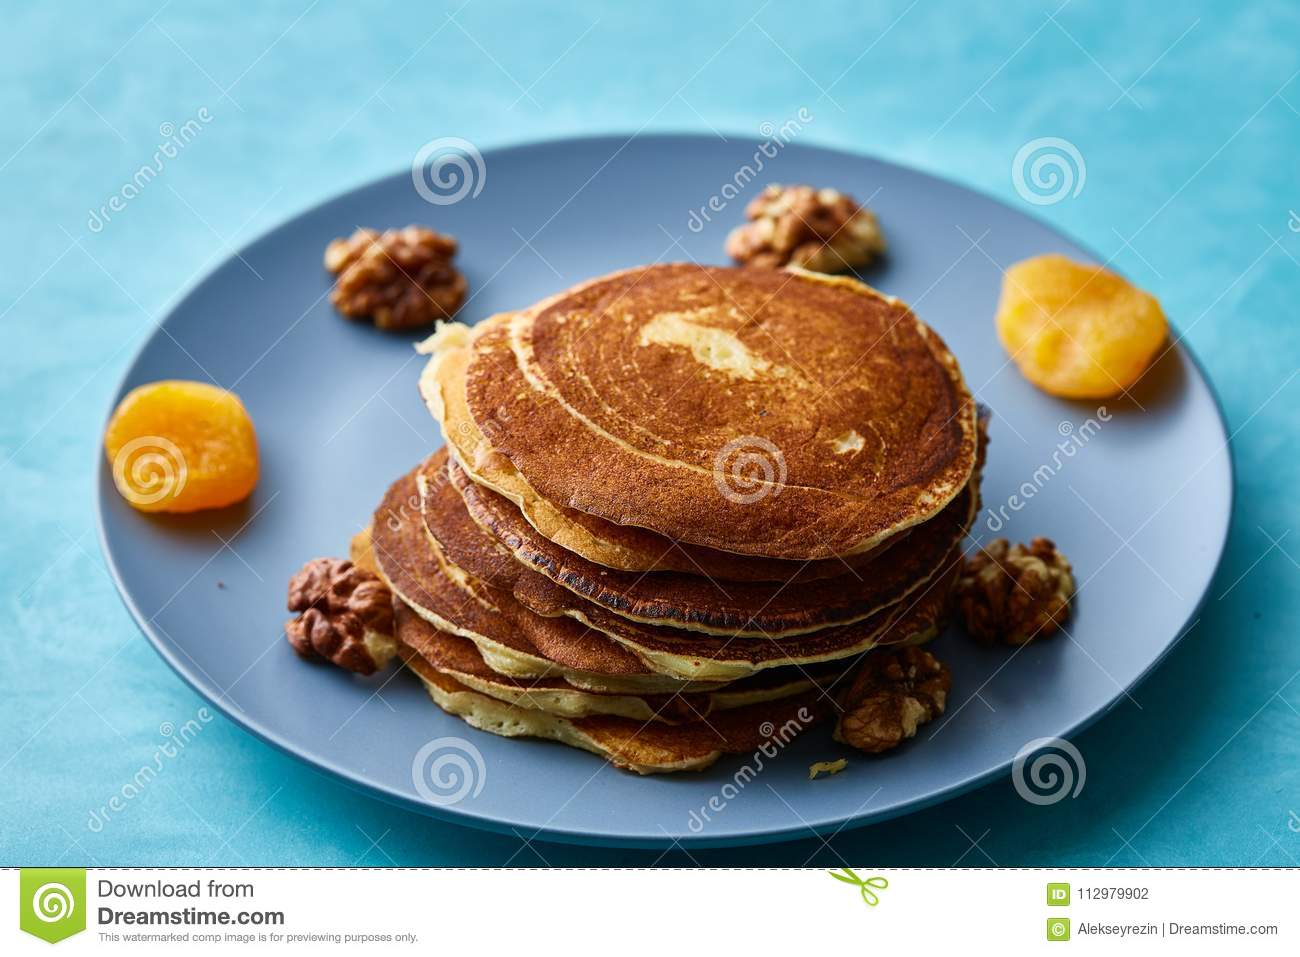 Pile of homemade pancakes with walnuts on blueish plate over blue background, selective focus